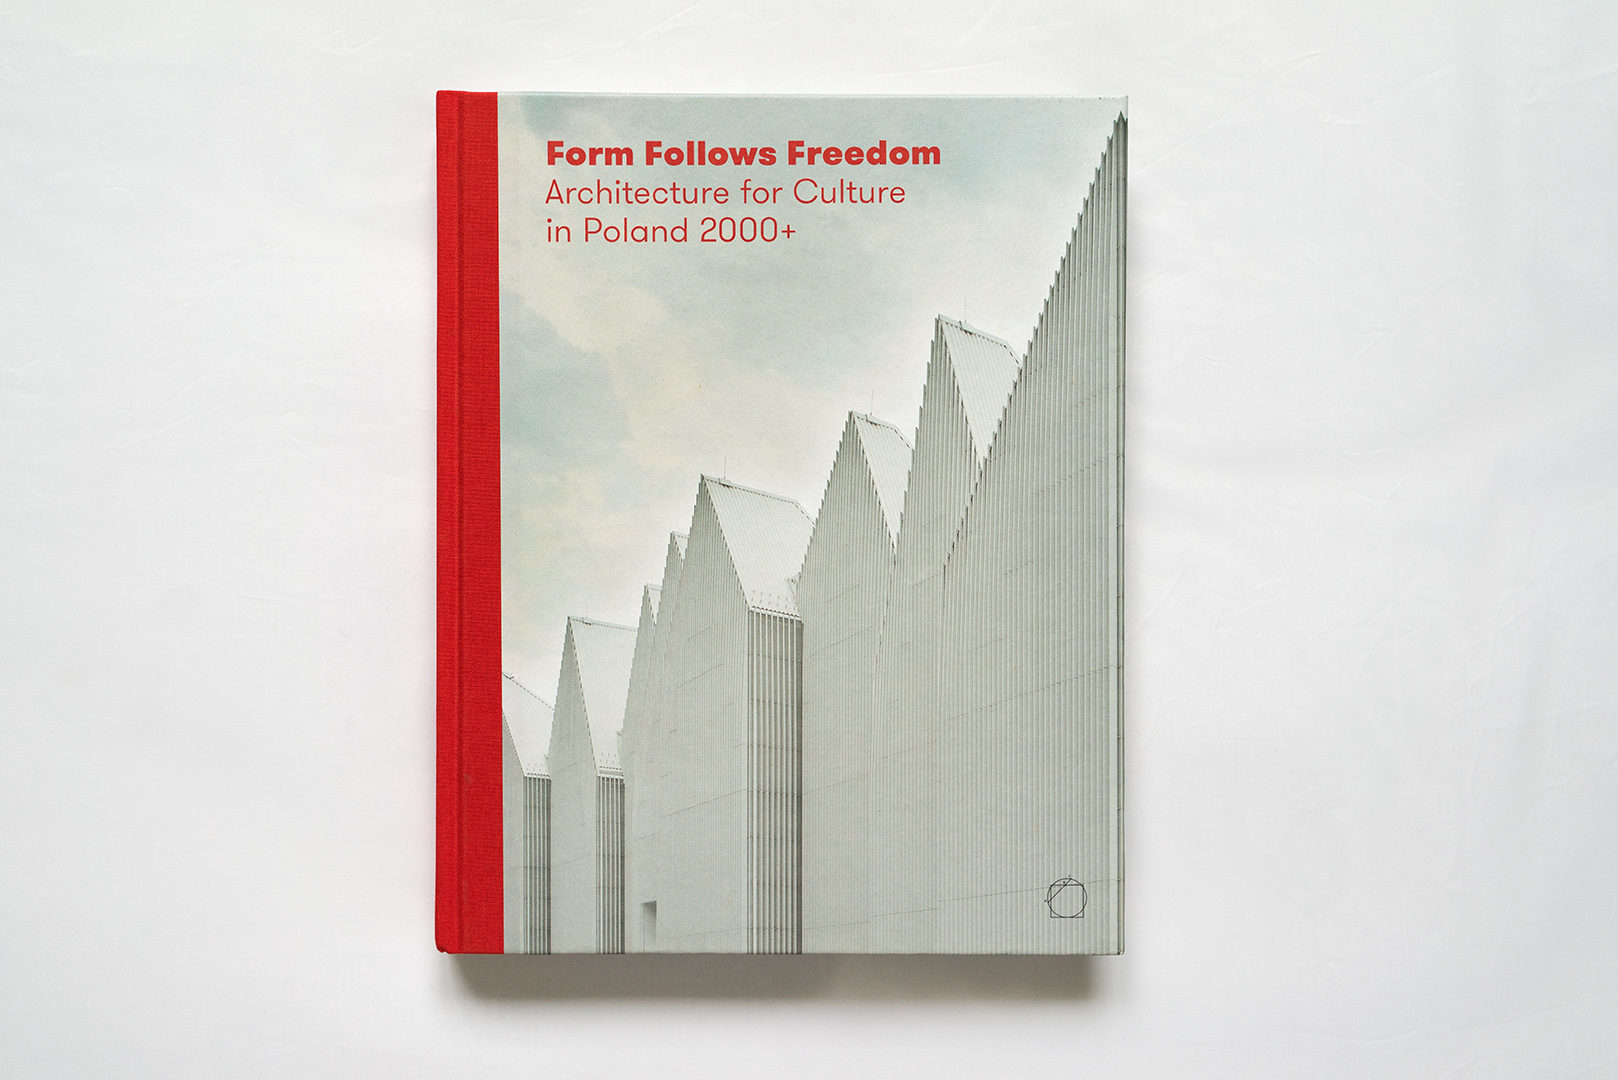 Form-Follows-Freedom-Architecture-for-Culture-in-Poland-2000